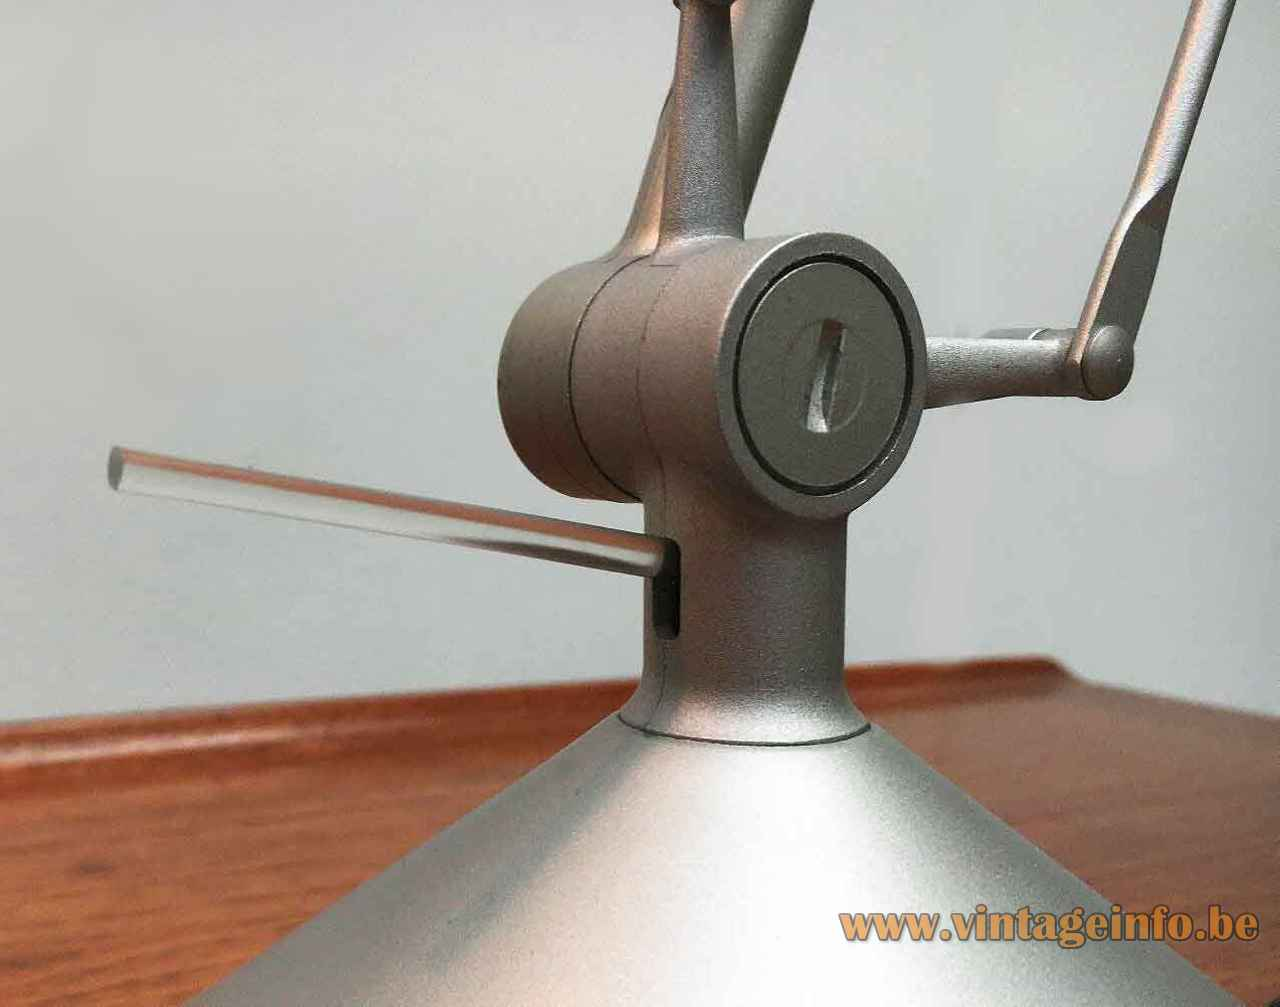 FLOS Archimoon Soft desk lamp grey metal joint & rods Design: Philippe Starck 1990s 2000s Italy